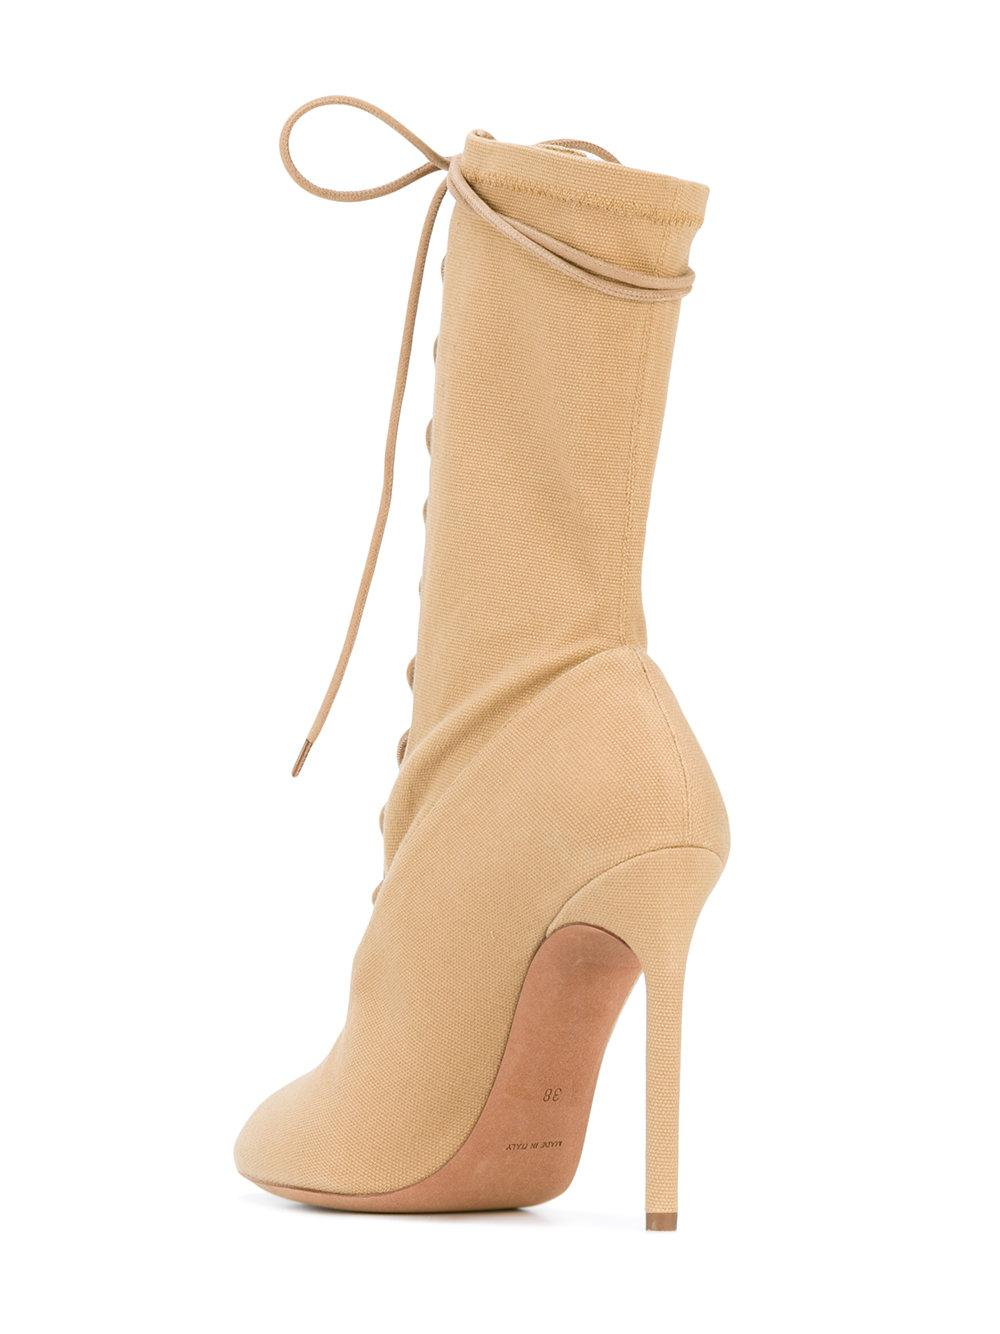 7dcdd6d51e4 Lyst - Yeezy Lace Up Boots in Natural